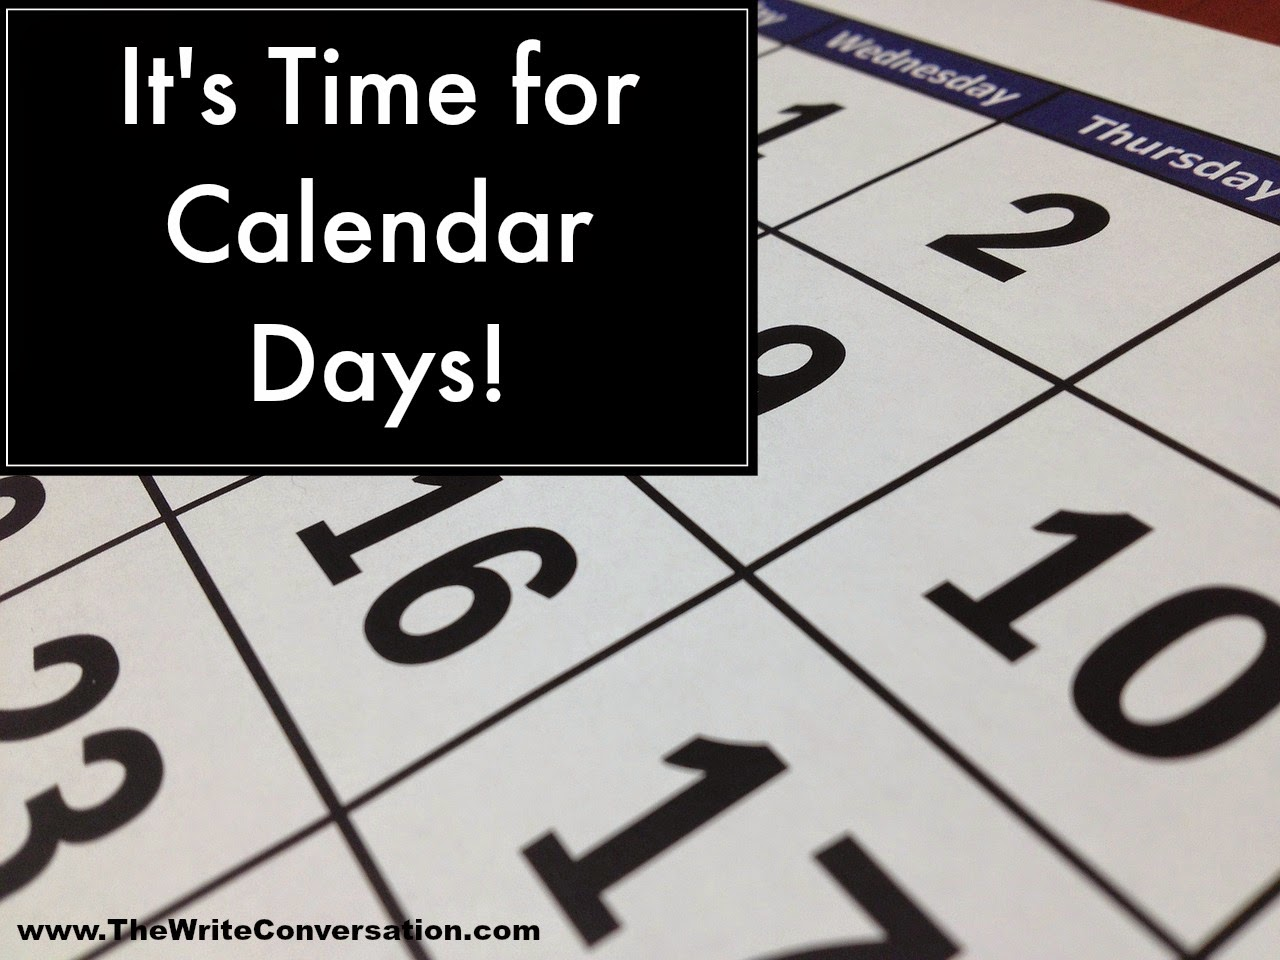 May Calendar Special Days : Edie melson s calendar days—may crazy holidays